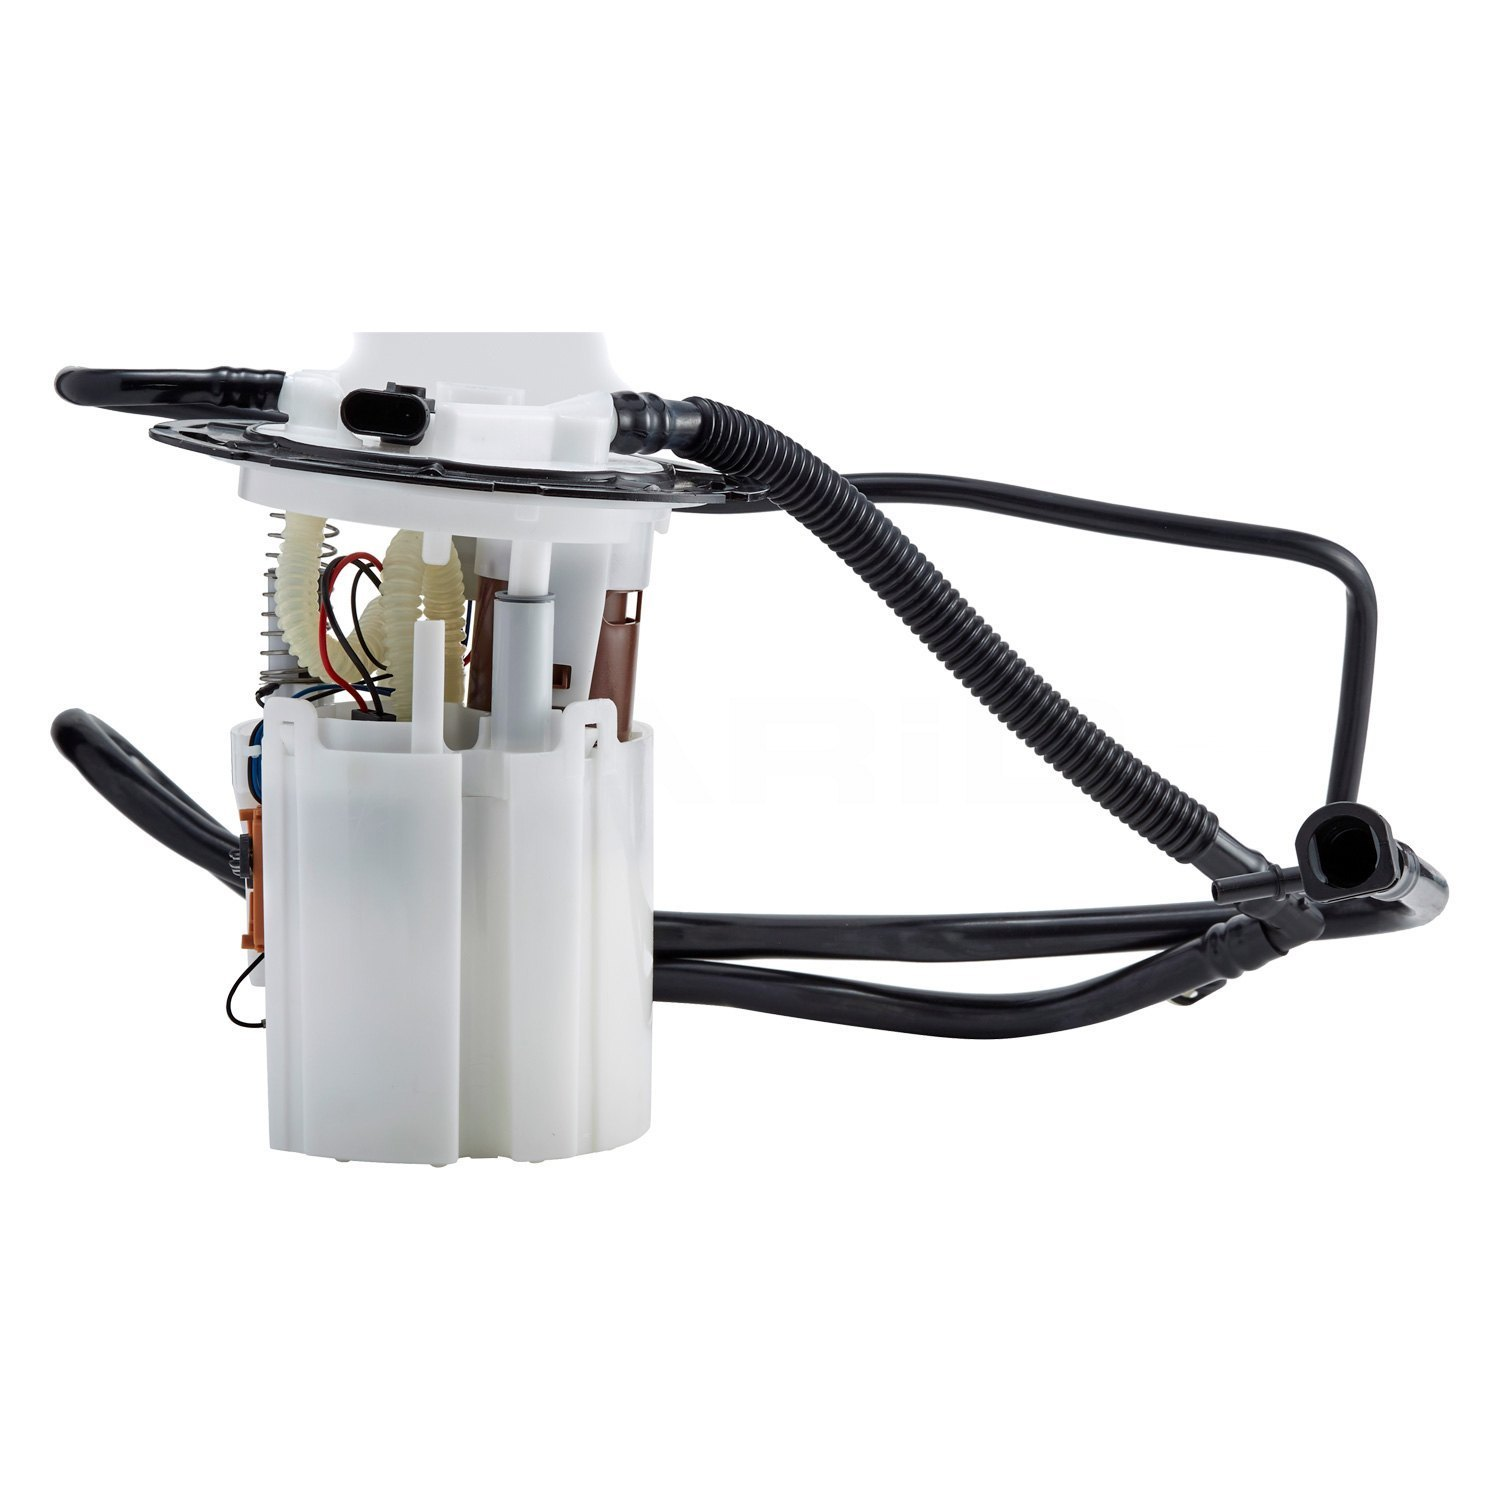 tyc chevy malibu 2006 fuel pump module assembly. Black Bedroom Furniture Sets. Home Design Ideas